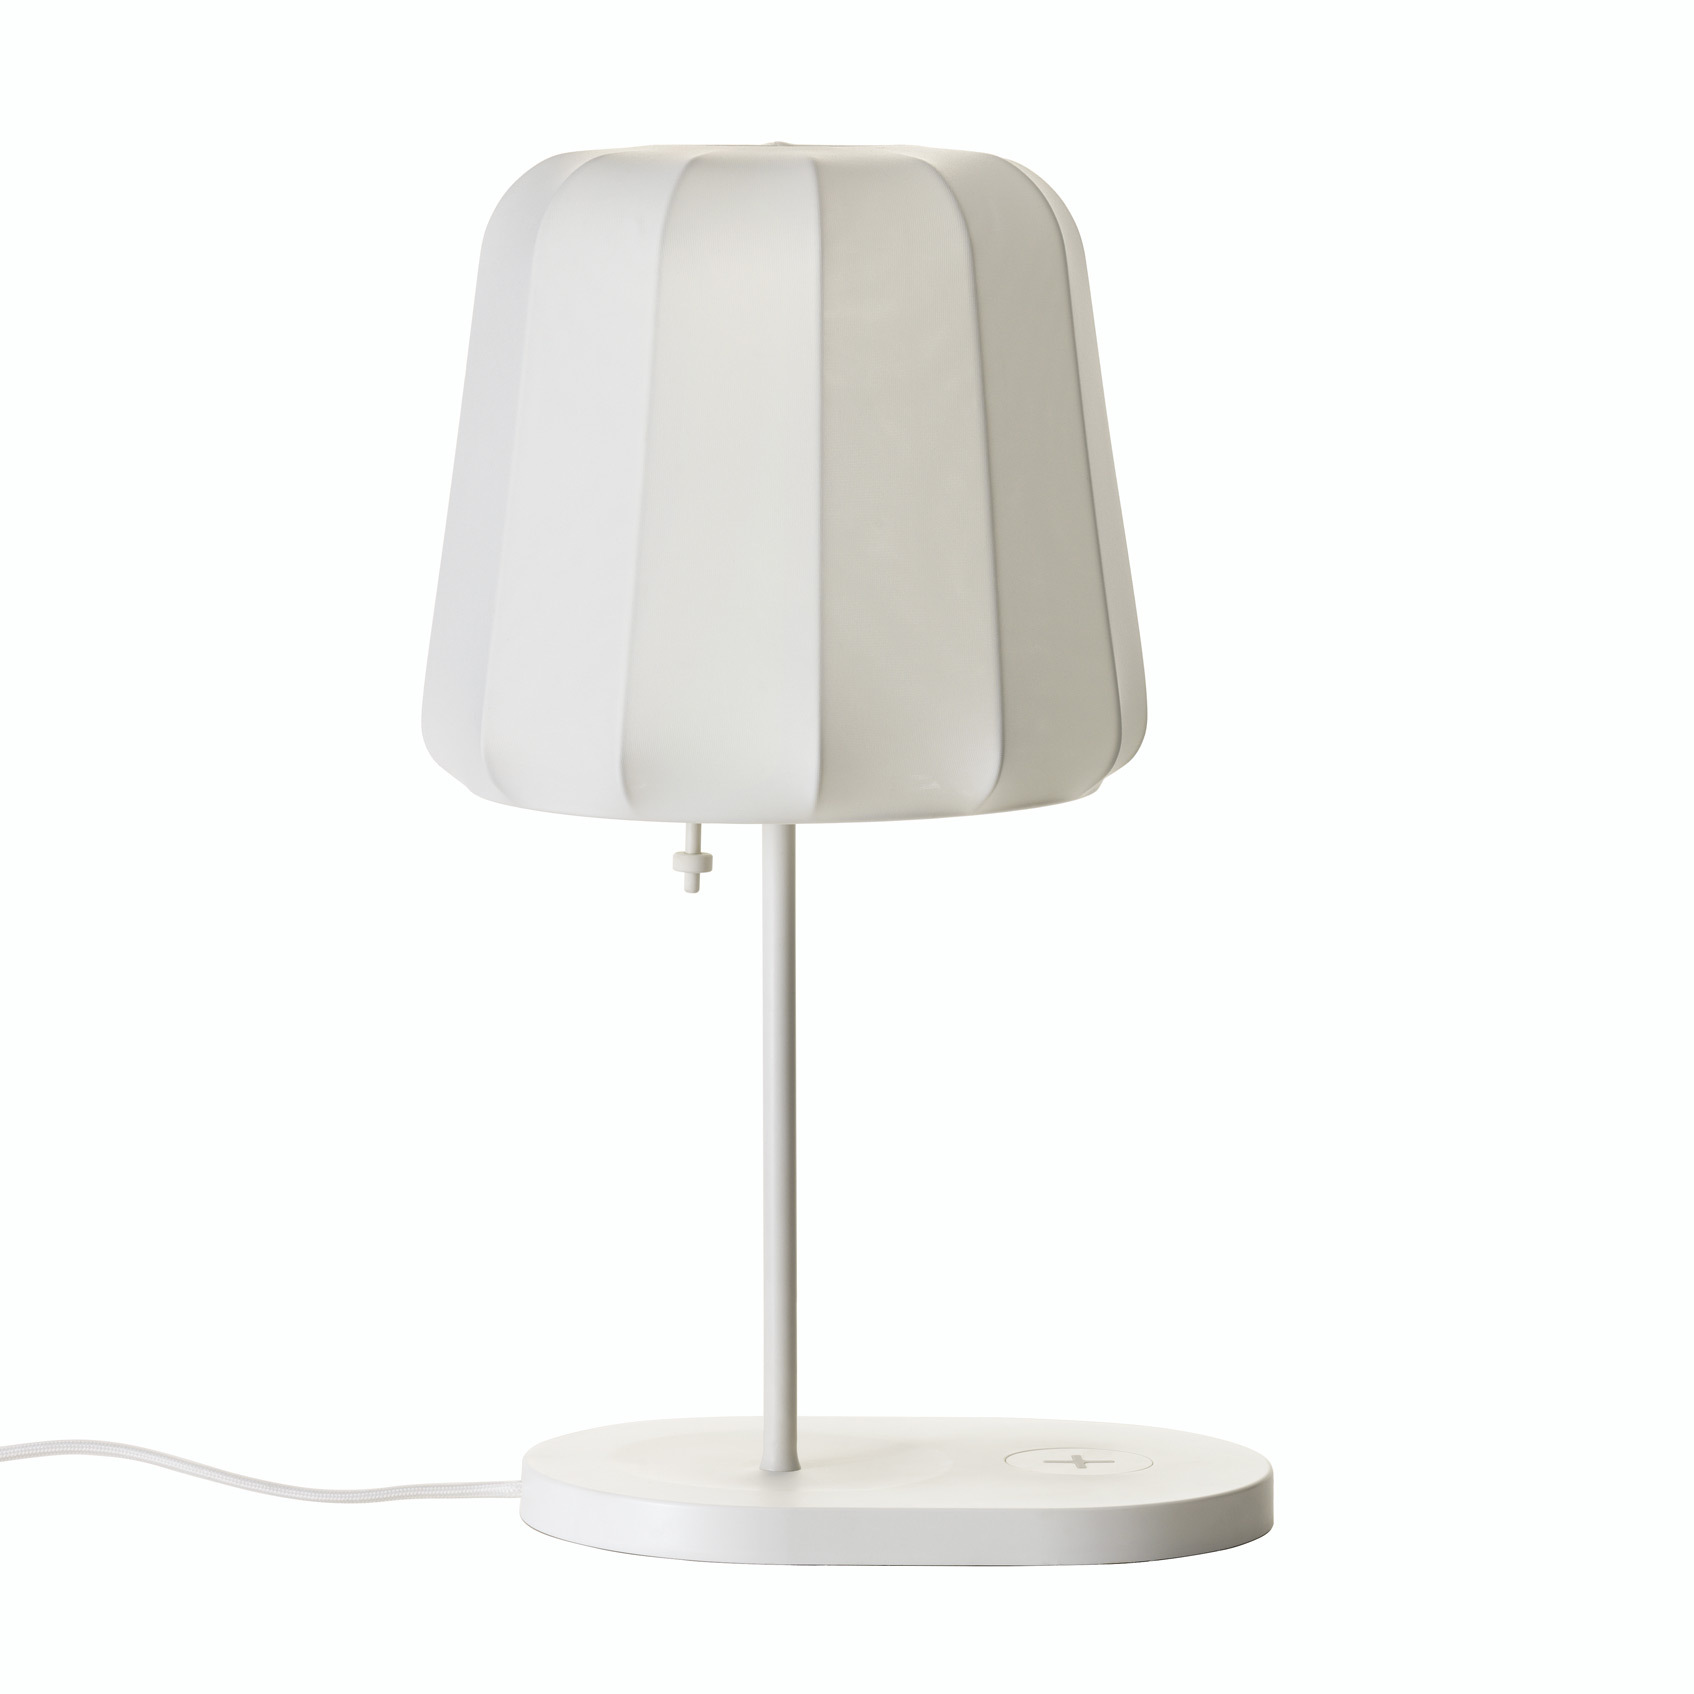 Ikea se lance dans le rechargement sans fil light zoom for Lampe de table rona